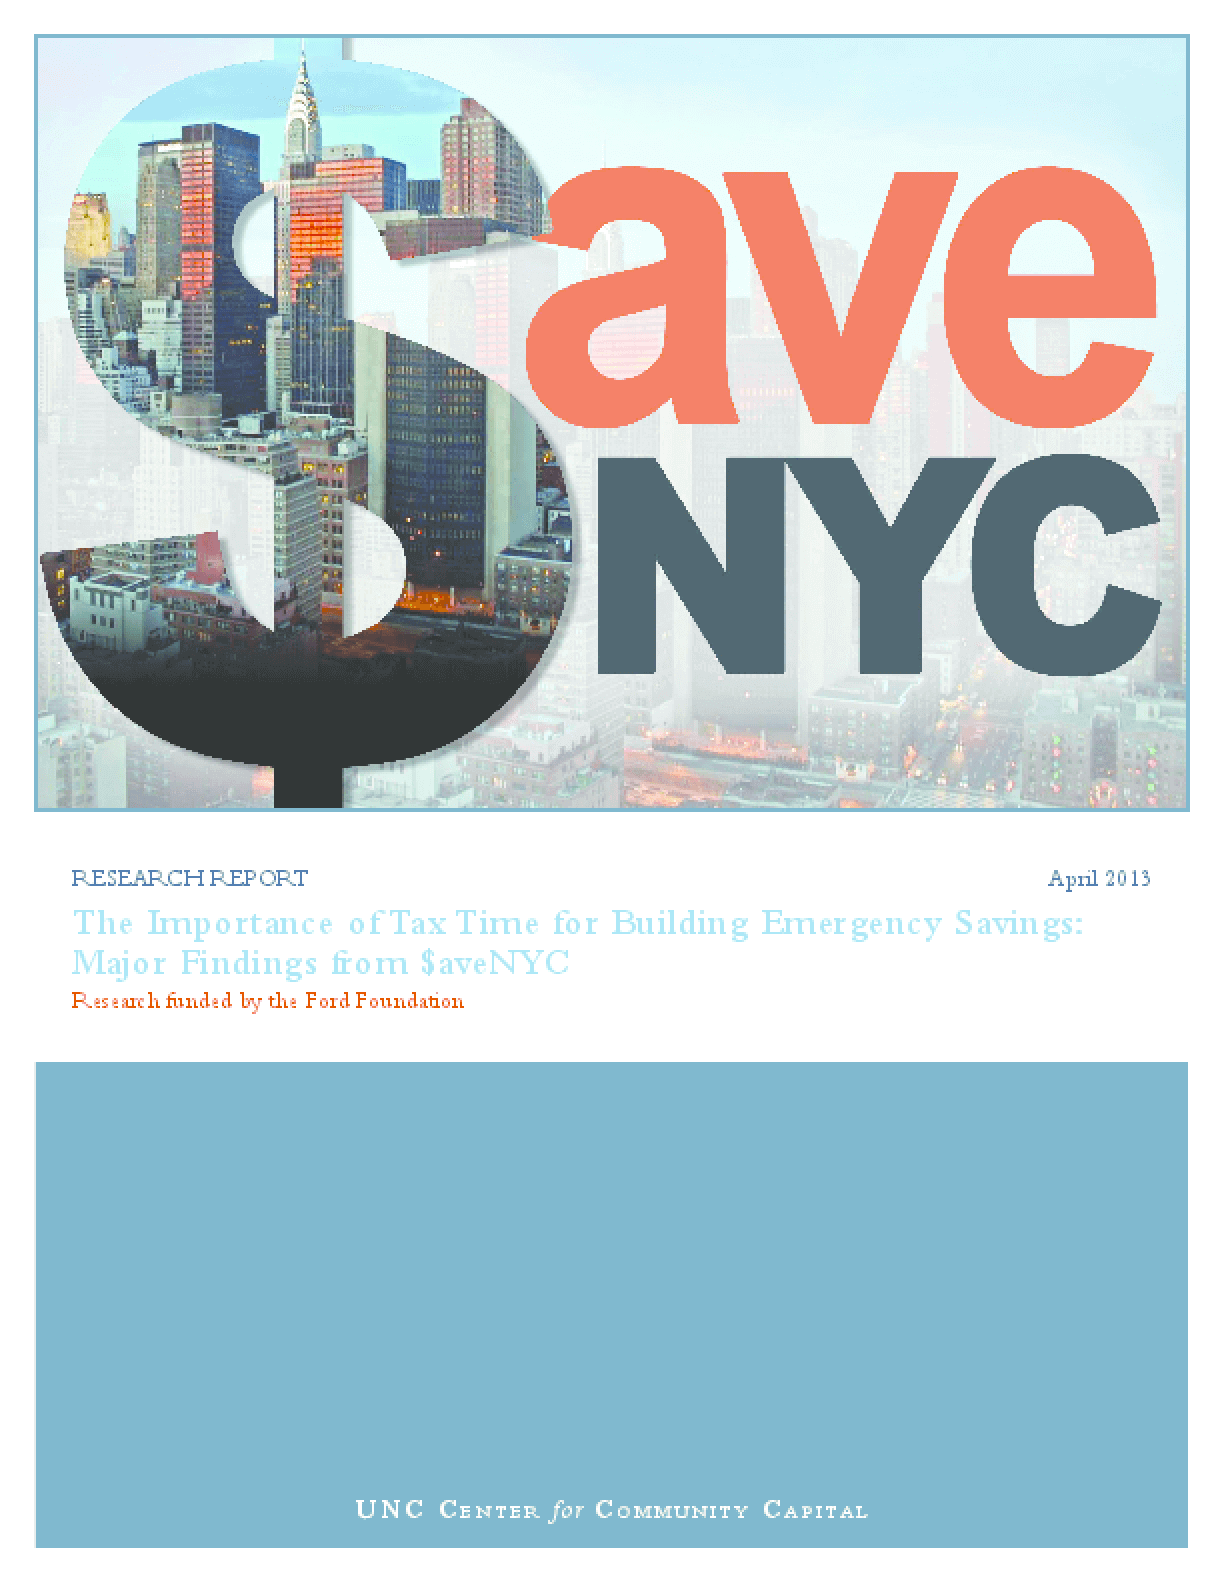 The Importance of Tax Time for Building Emergency Savings: Major Findings from $aveNYC